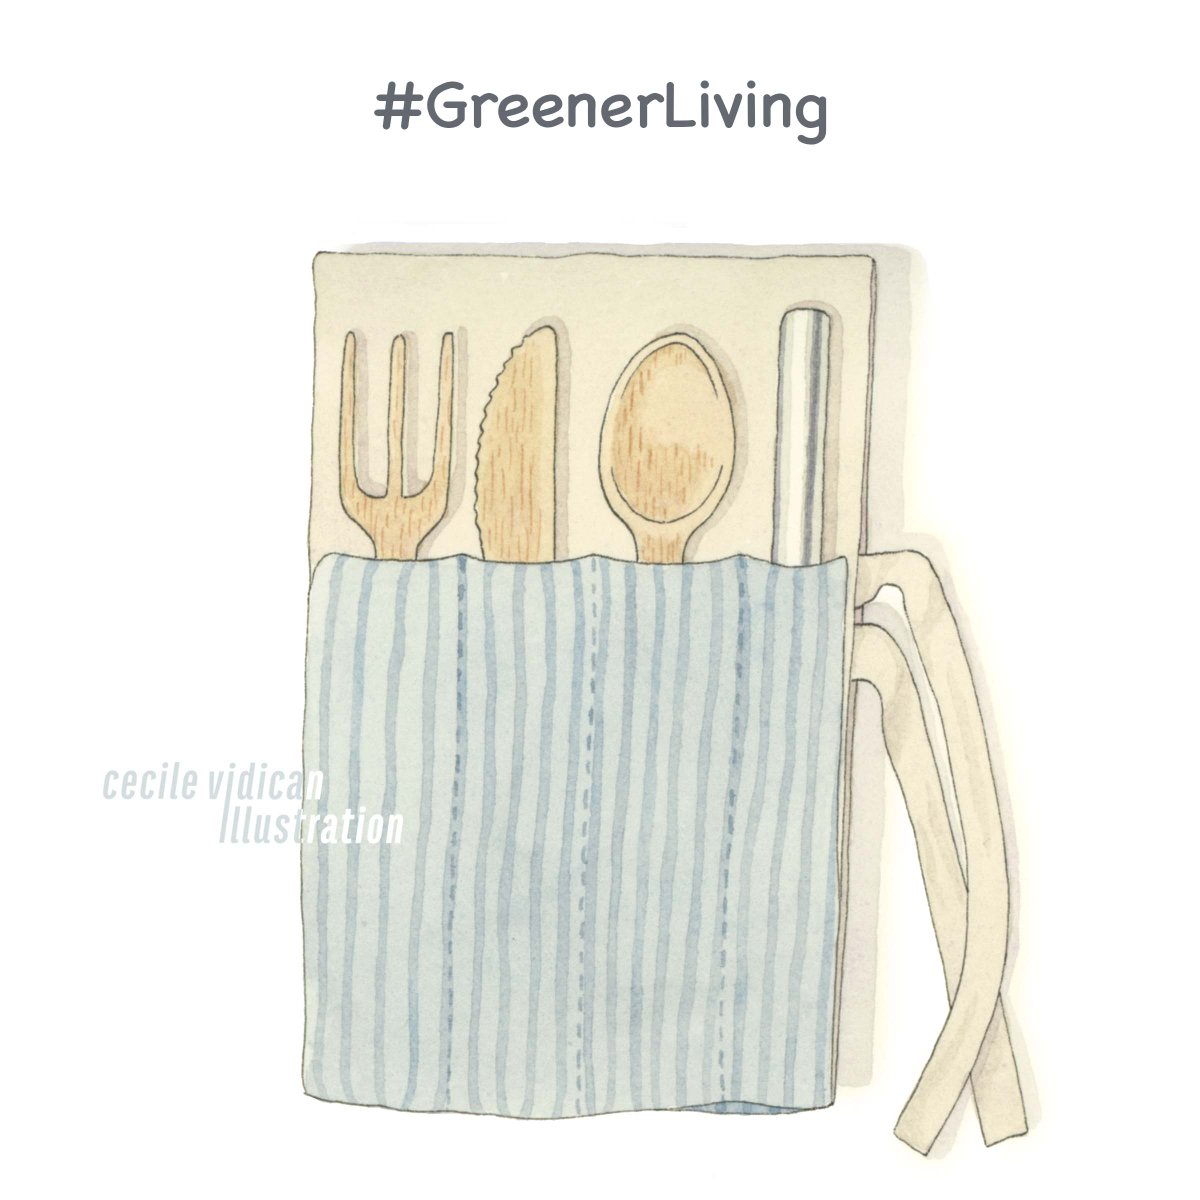 Keeping a set of reusable utensils & a small reusable container in your bag makes it easier to avoid single-use cutlery or take away styrofoam boxes. Add a glass or metal straw if you use one!  #reusableutensils #reusablestraw #bambooutensils #reusablecontainers #glassstrawpic.twitter.com/zWeRqFJisw